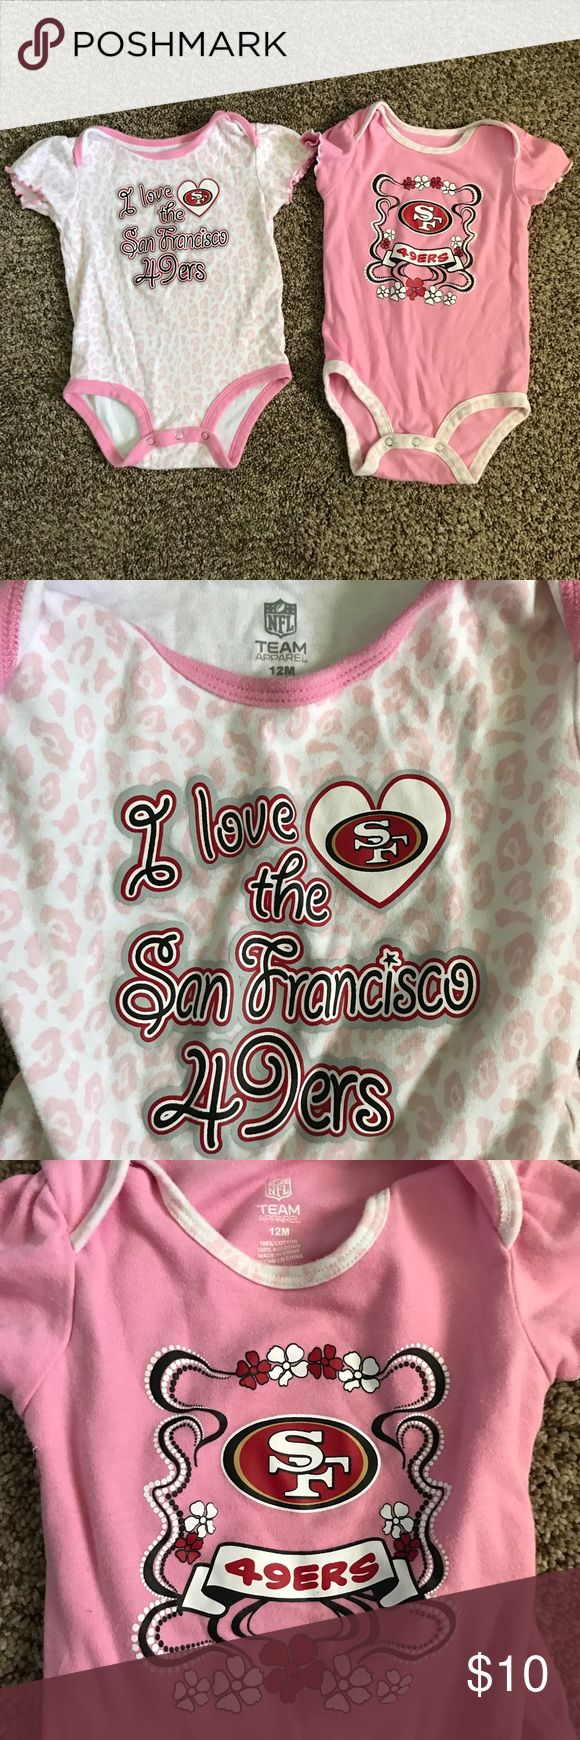 Pair of Girls SF San Francisco 49ers Onesies Darling girls SF Forty-Niners onesies with ruffle sleeves. Excellent used condition. Reasonable offers accepted, no lowballs or trades please. NFL Team Apparel One Pieces Bodysuits